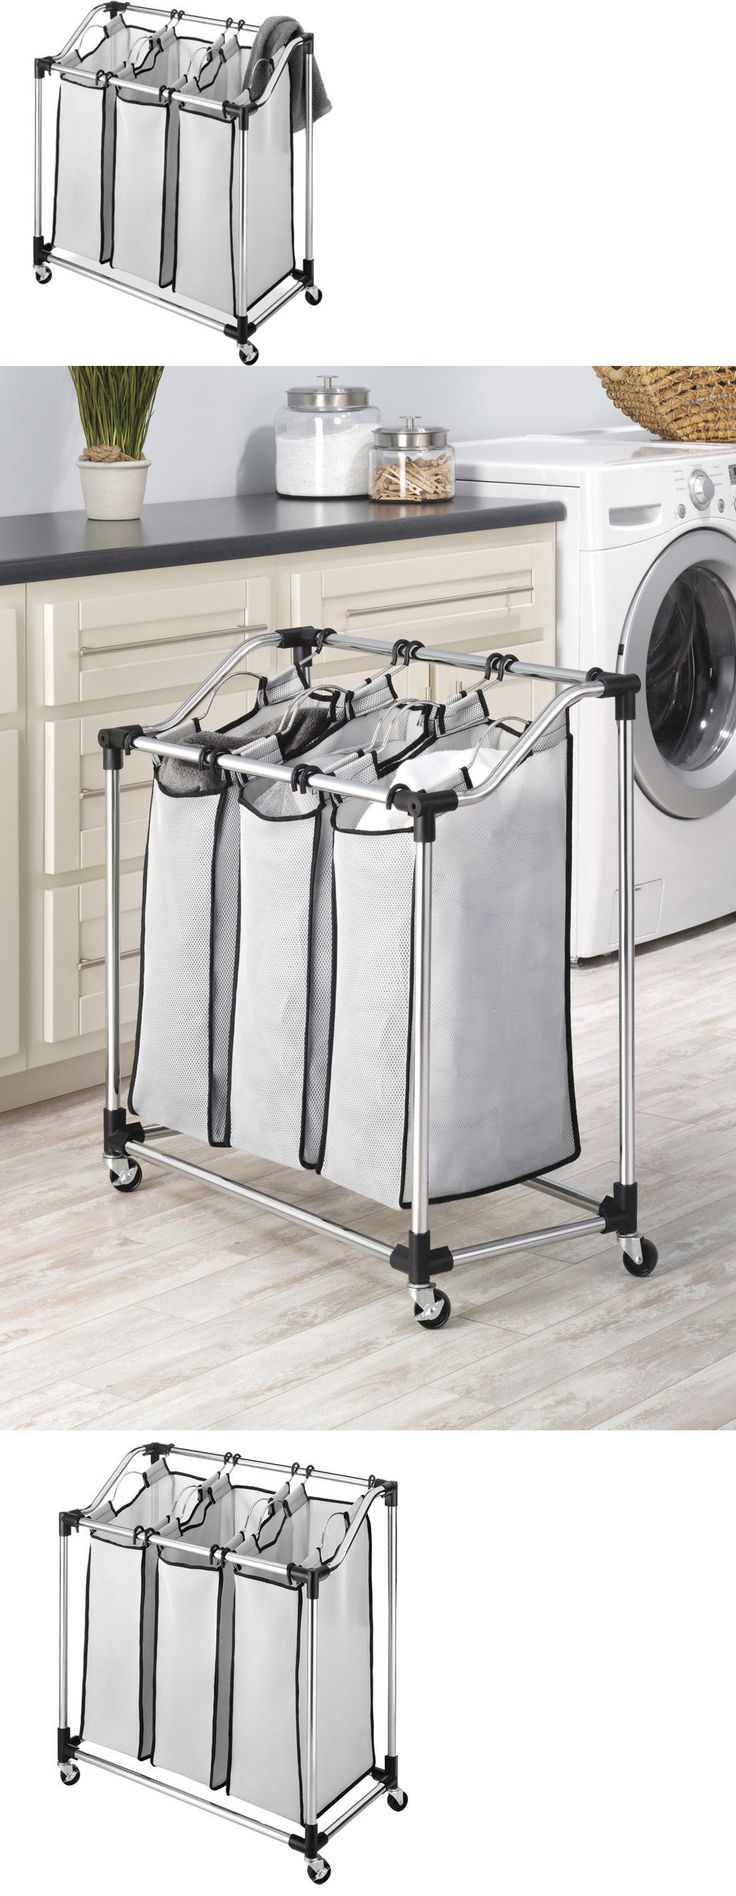 White tilt out clothes storage basket bin bathroom drawer ebay - Hampers 43517 3 Bag Laundry Sorter Cart Rolling Triple Clothes Hamper Bin Storage Basket Rack